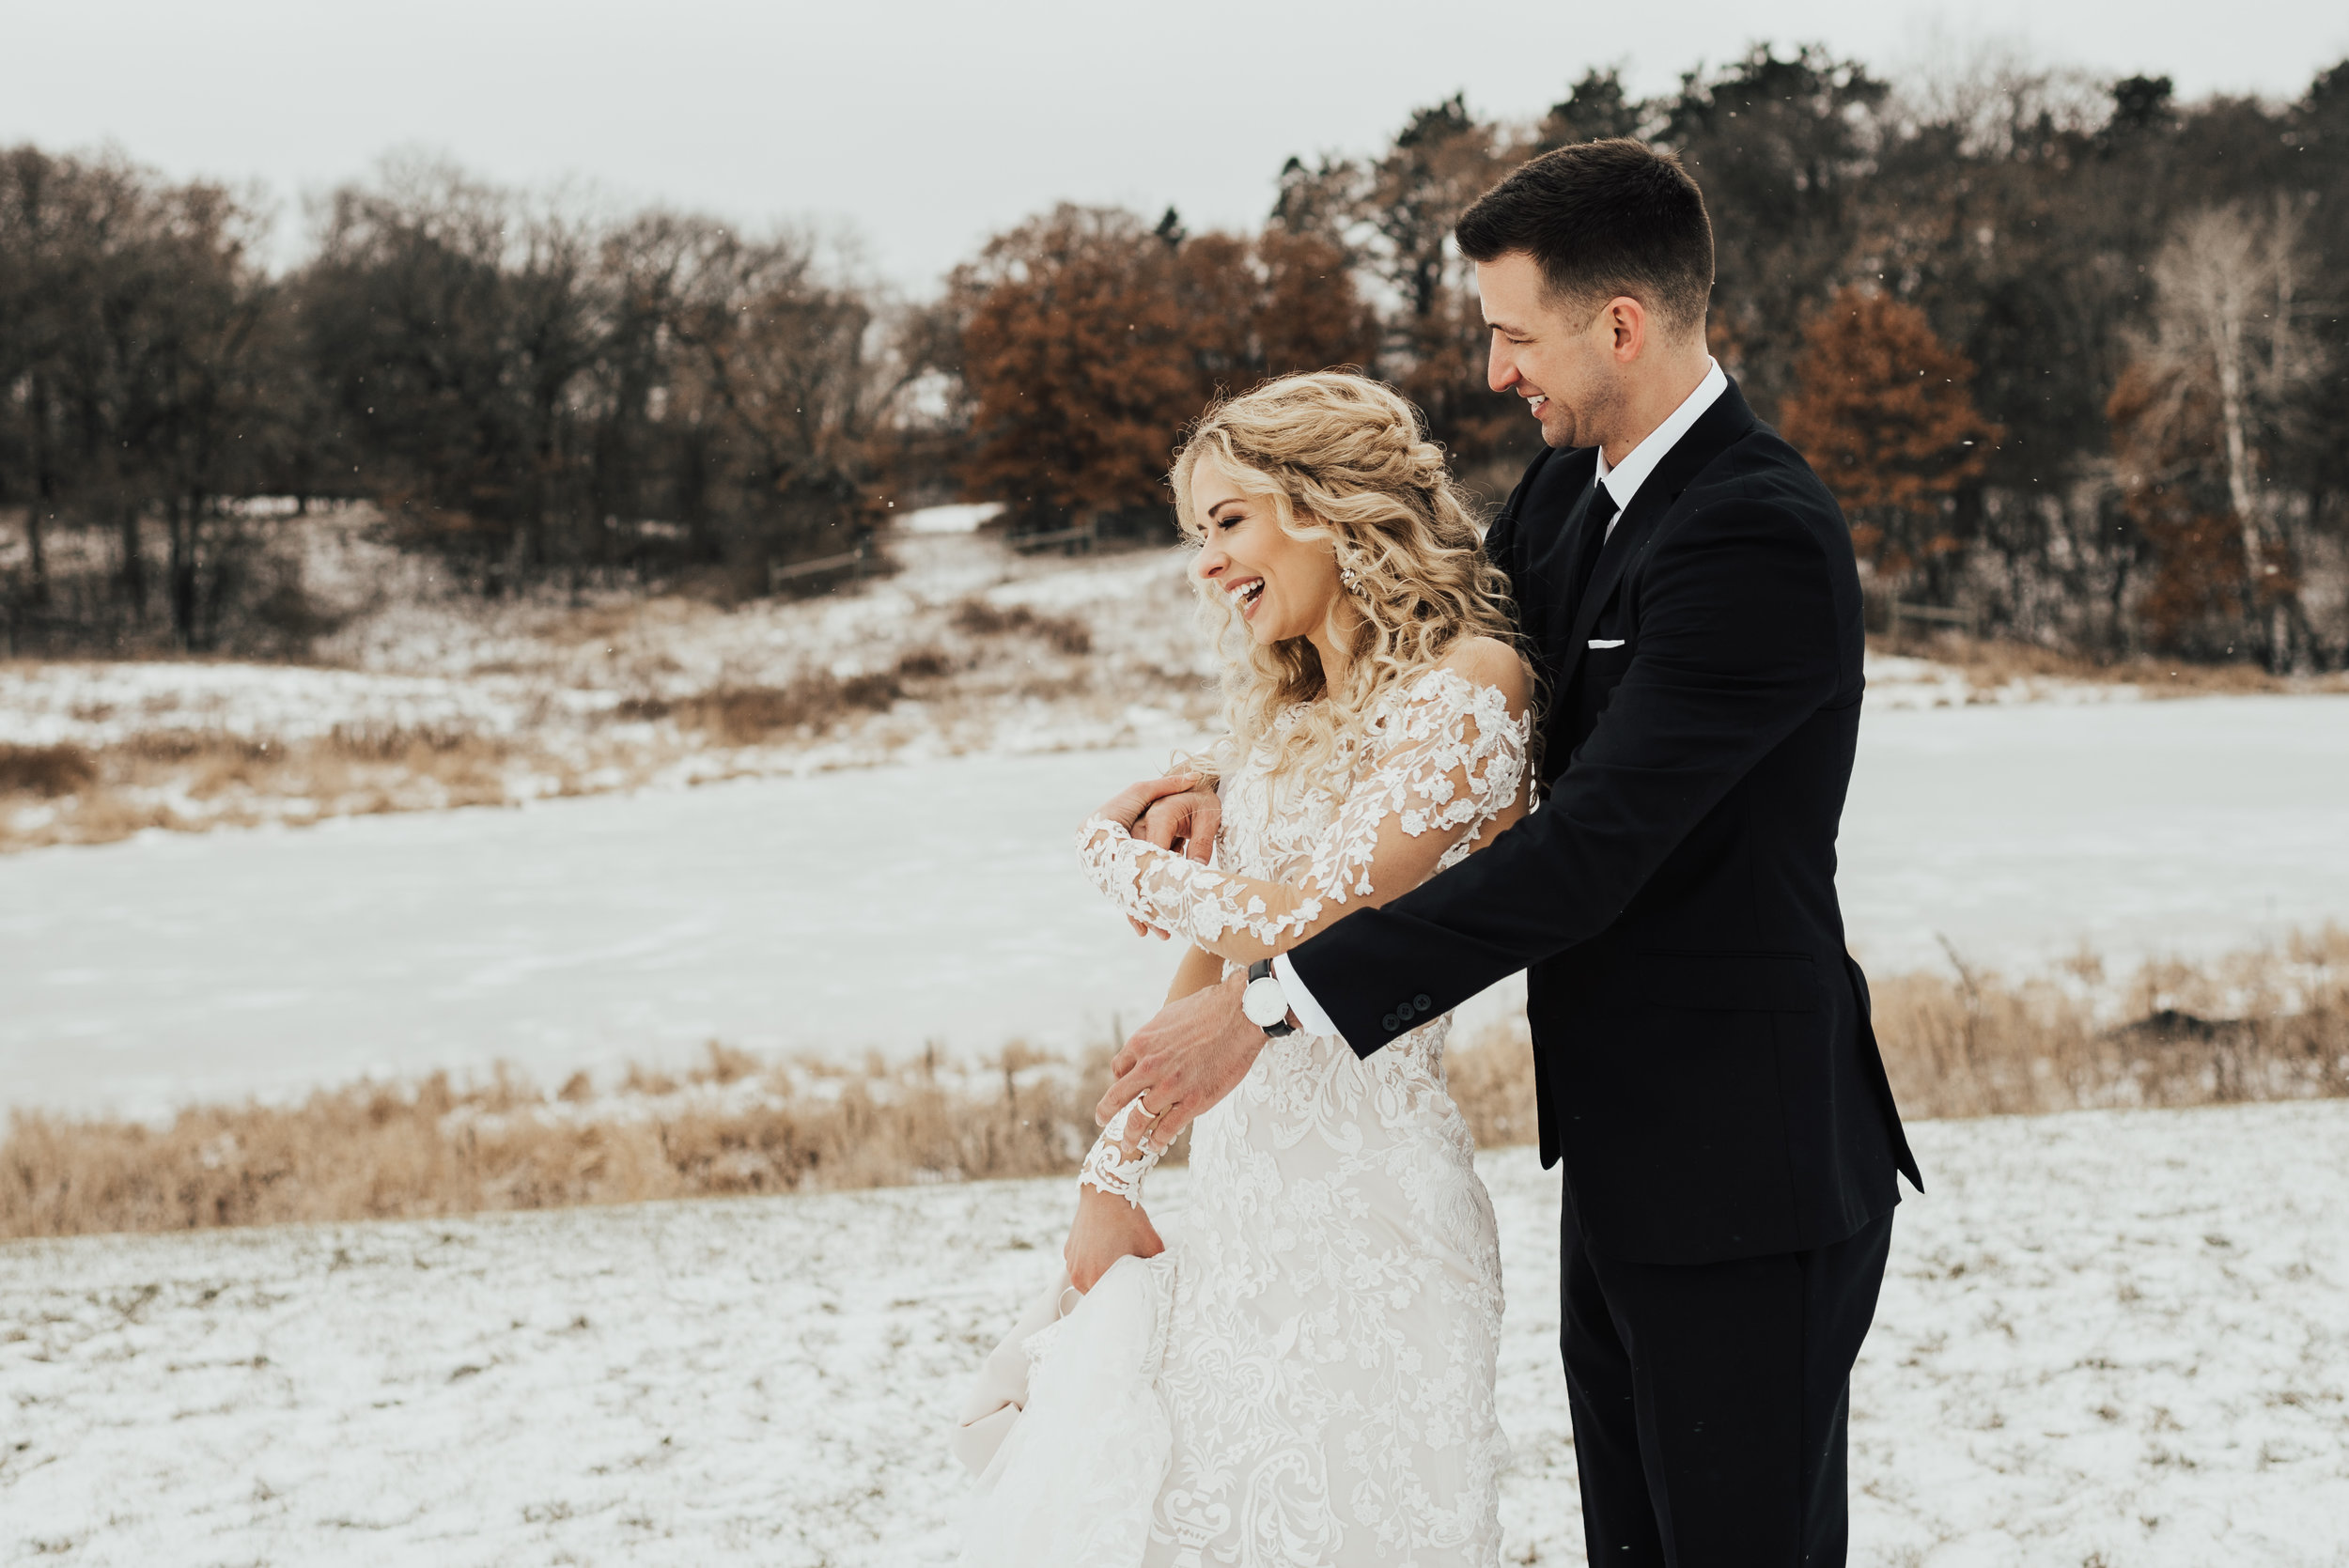 Steena-Anne-Winter-Vineyard-Wedding90.jpg